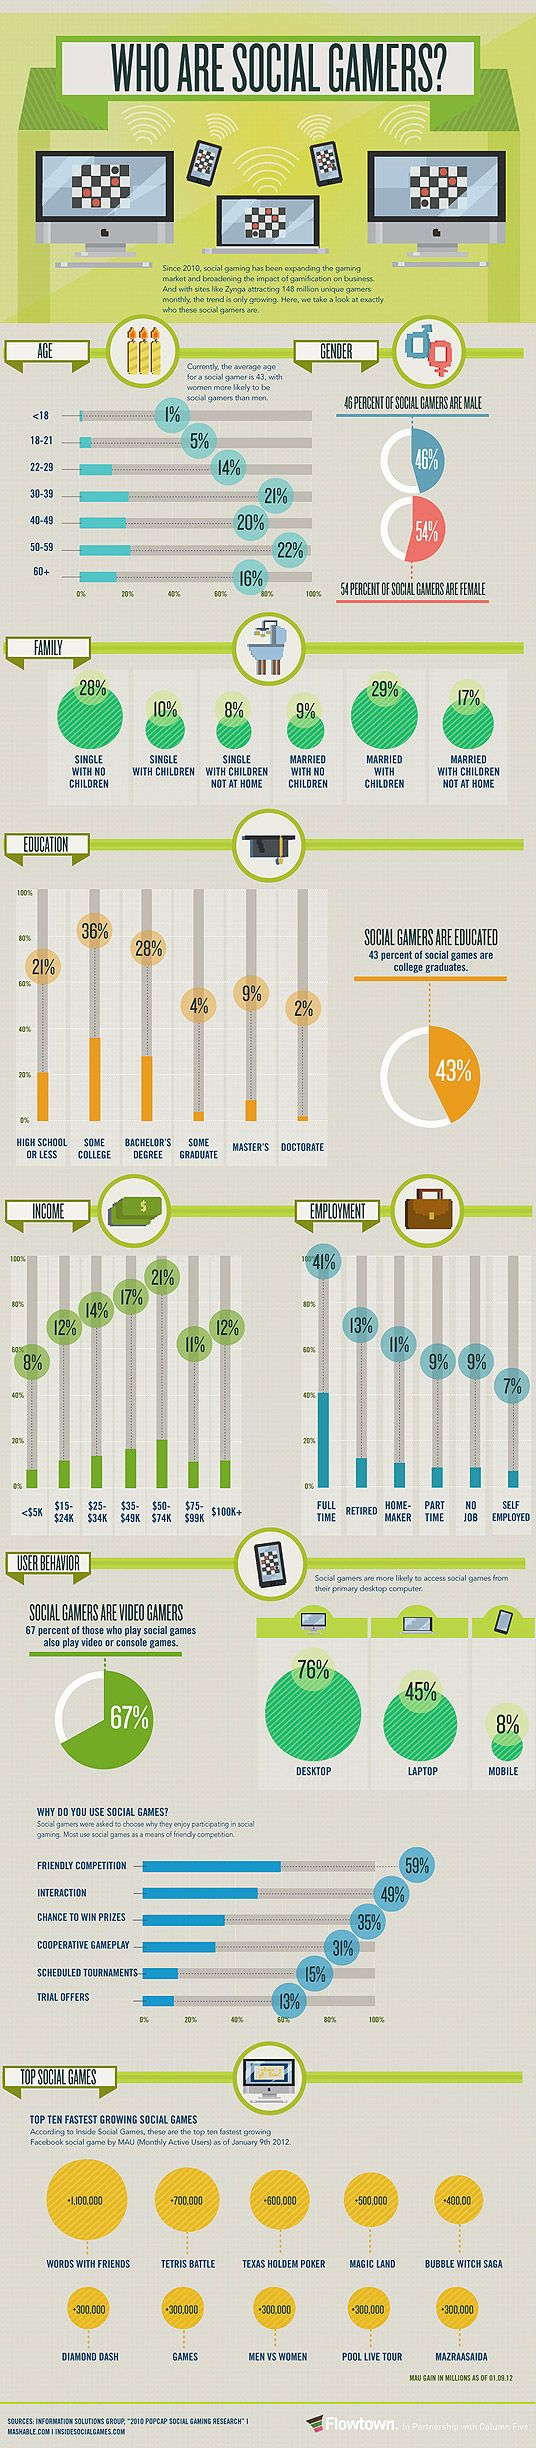 Who are social gamers http://www.digitalbuzzblog.com/infographic-social-gaming-demographics-statistics-2012/